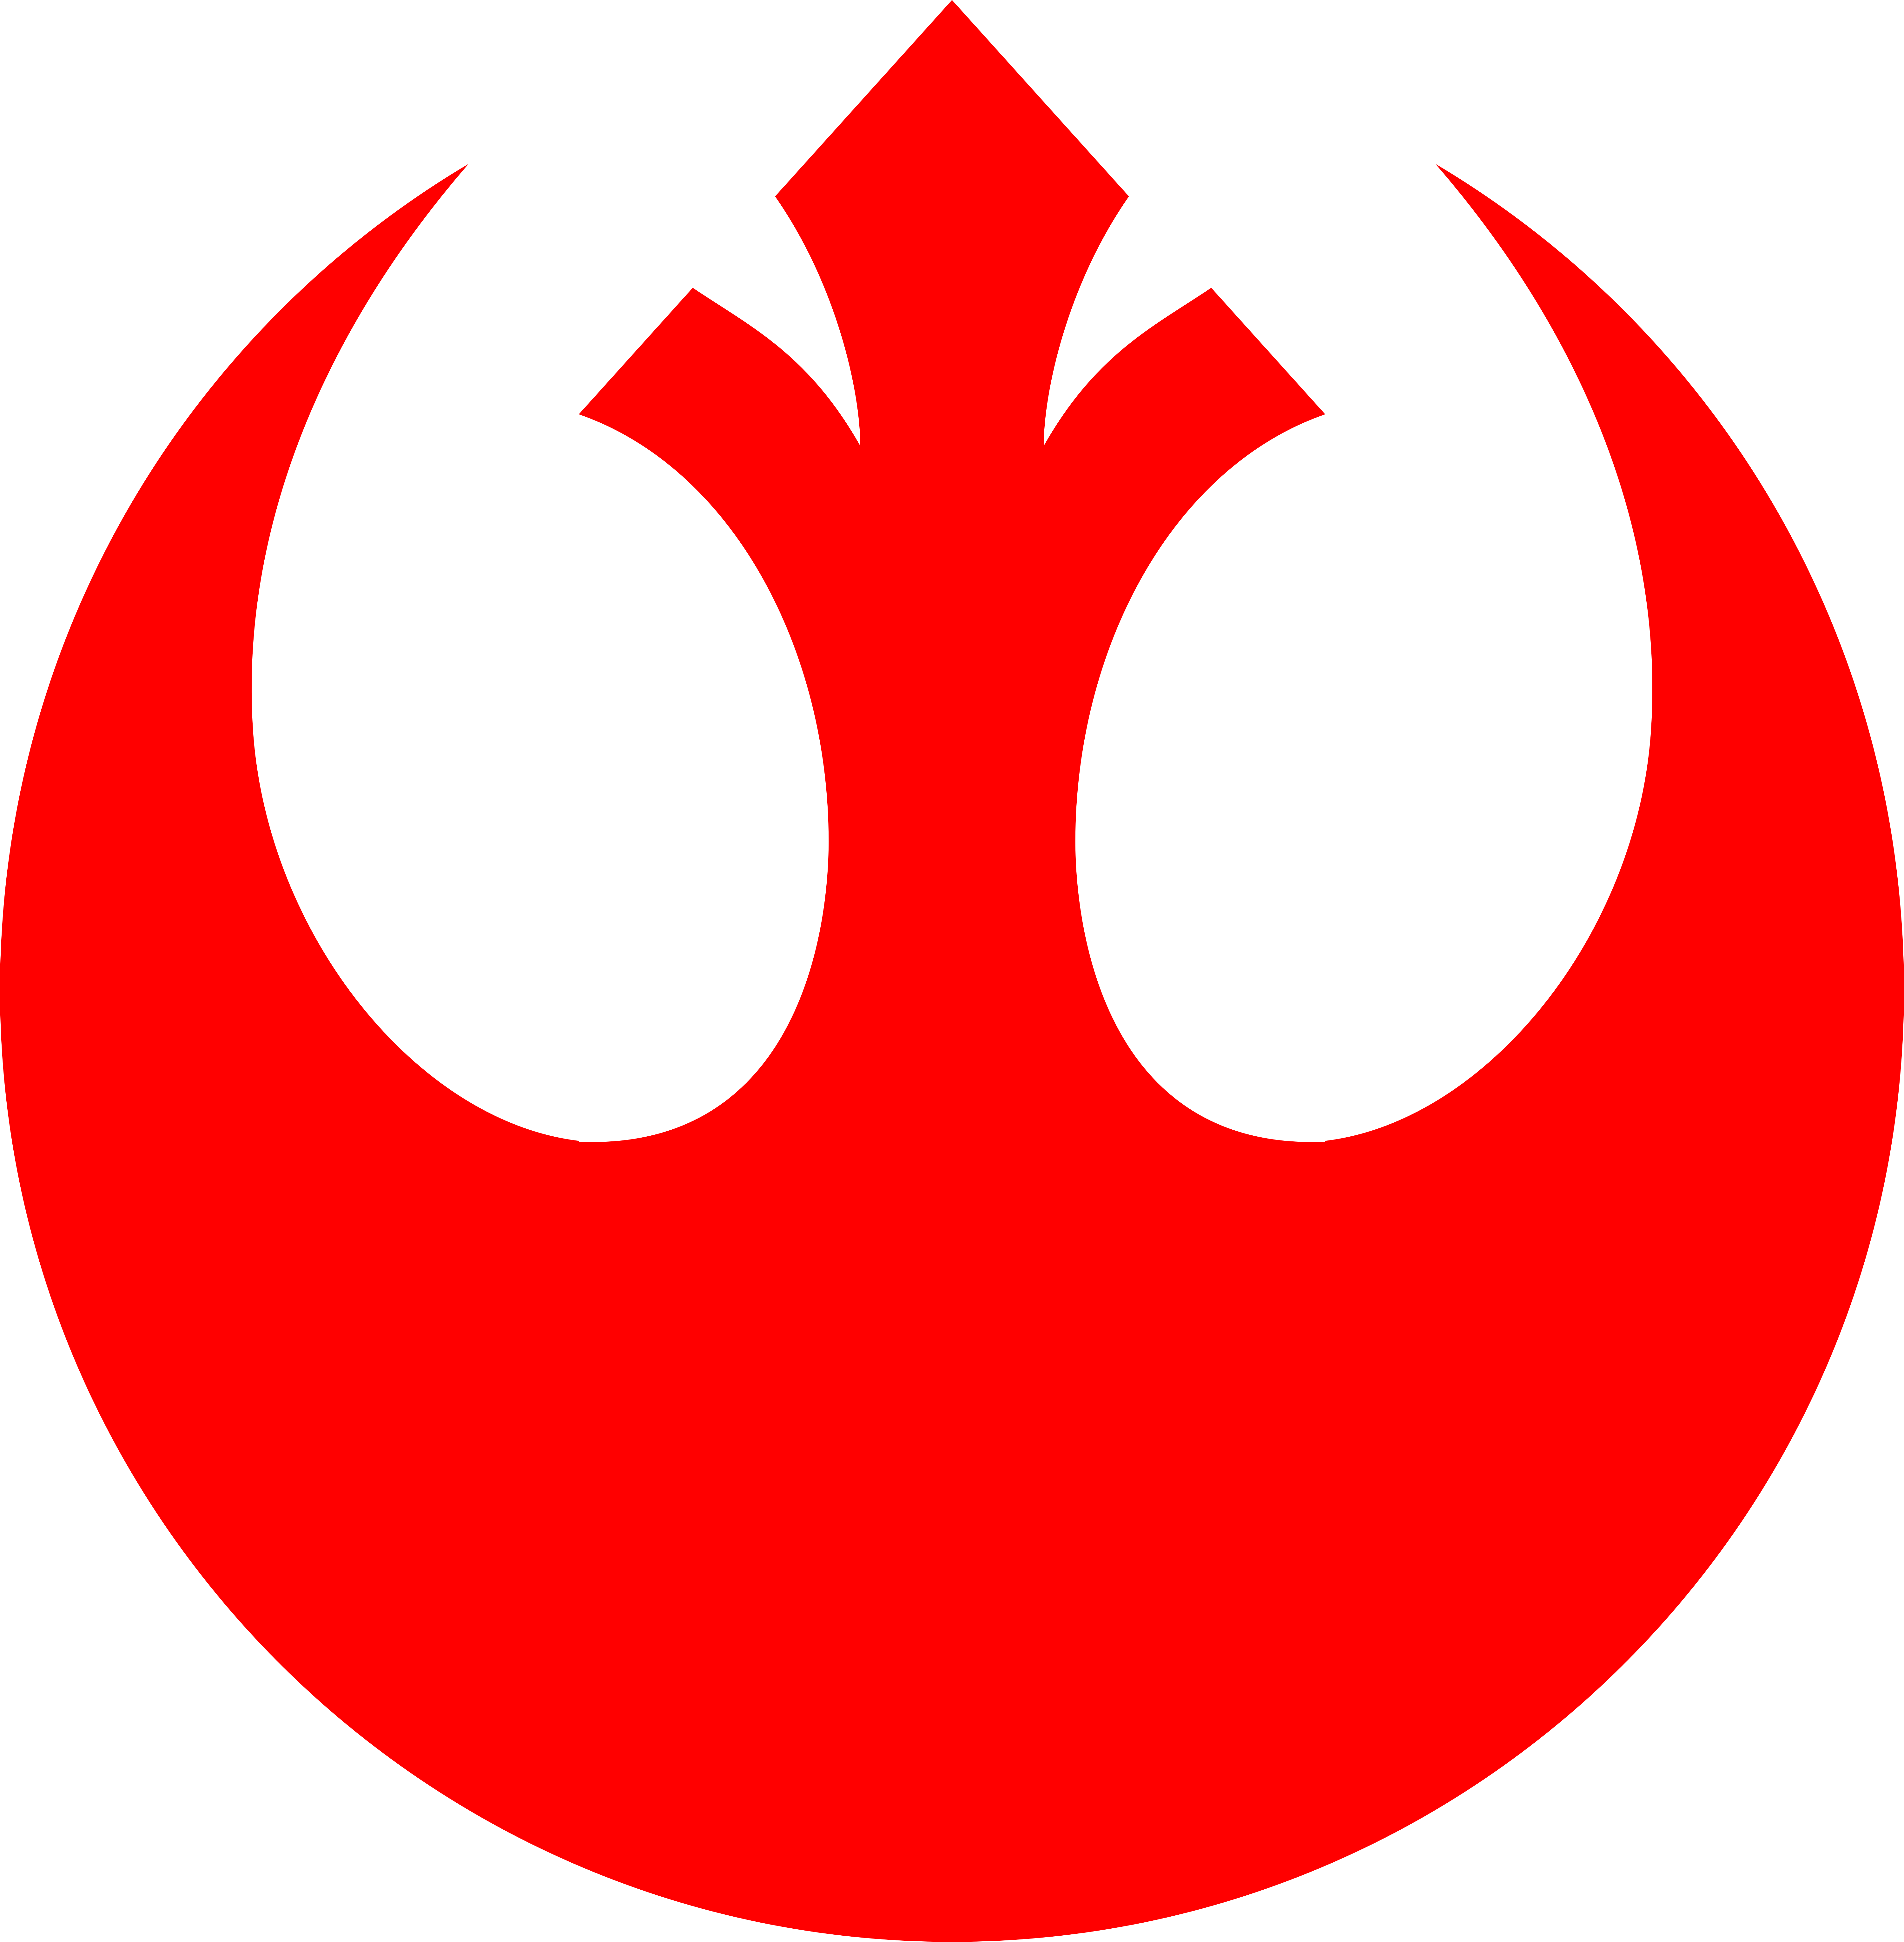 Image logo svg png. Starwars clipart rebel alliance